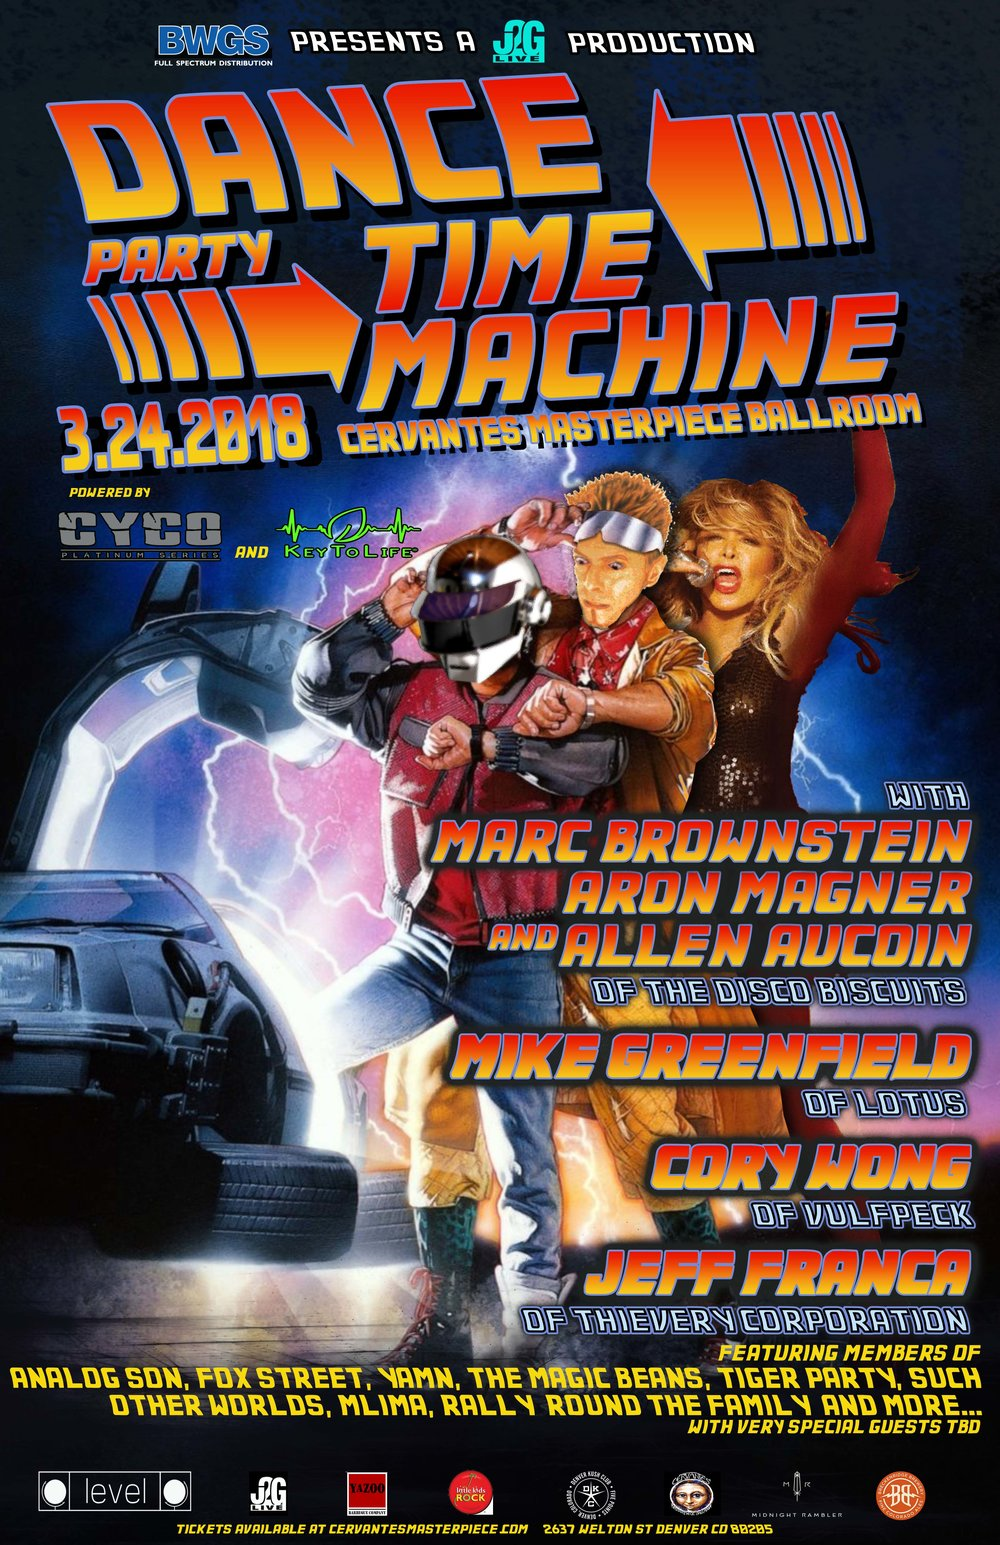 DancePartyTimeMachinePoster2018final.jpg